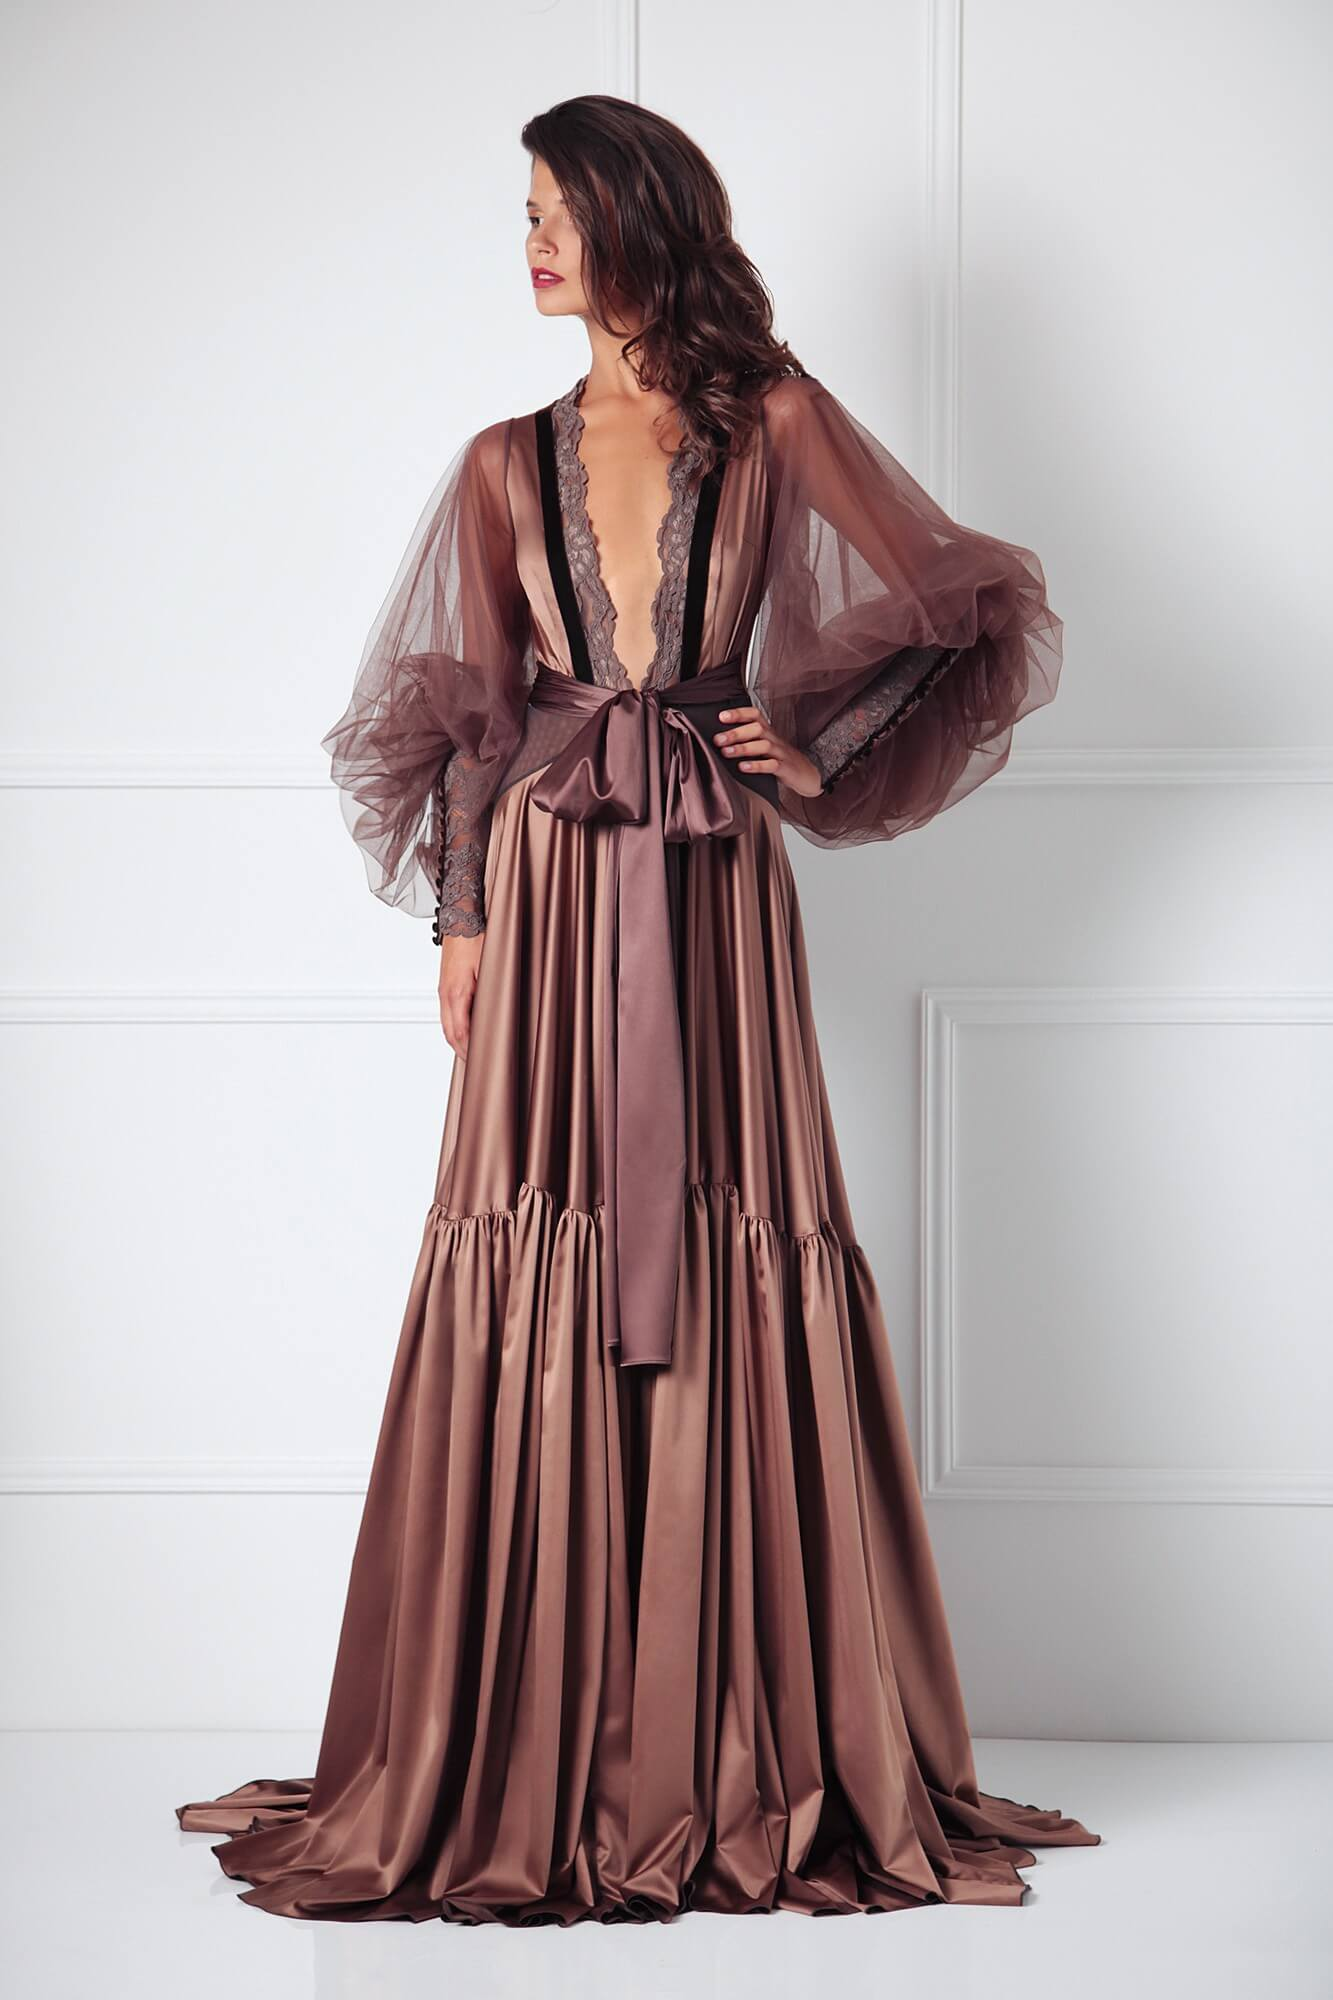 Lingerie Lust Objects: Amoralle Almond Magnum Robe